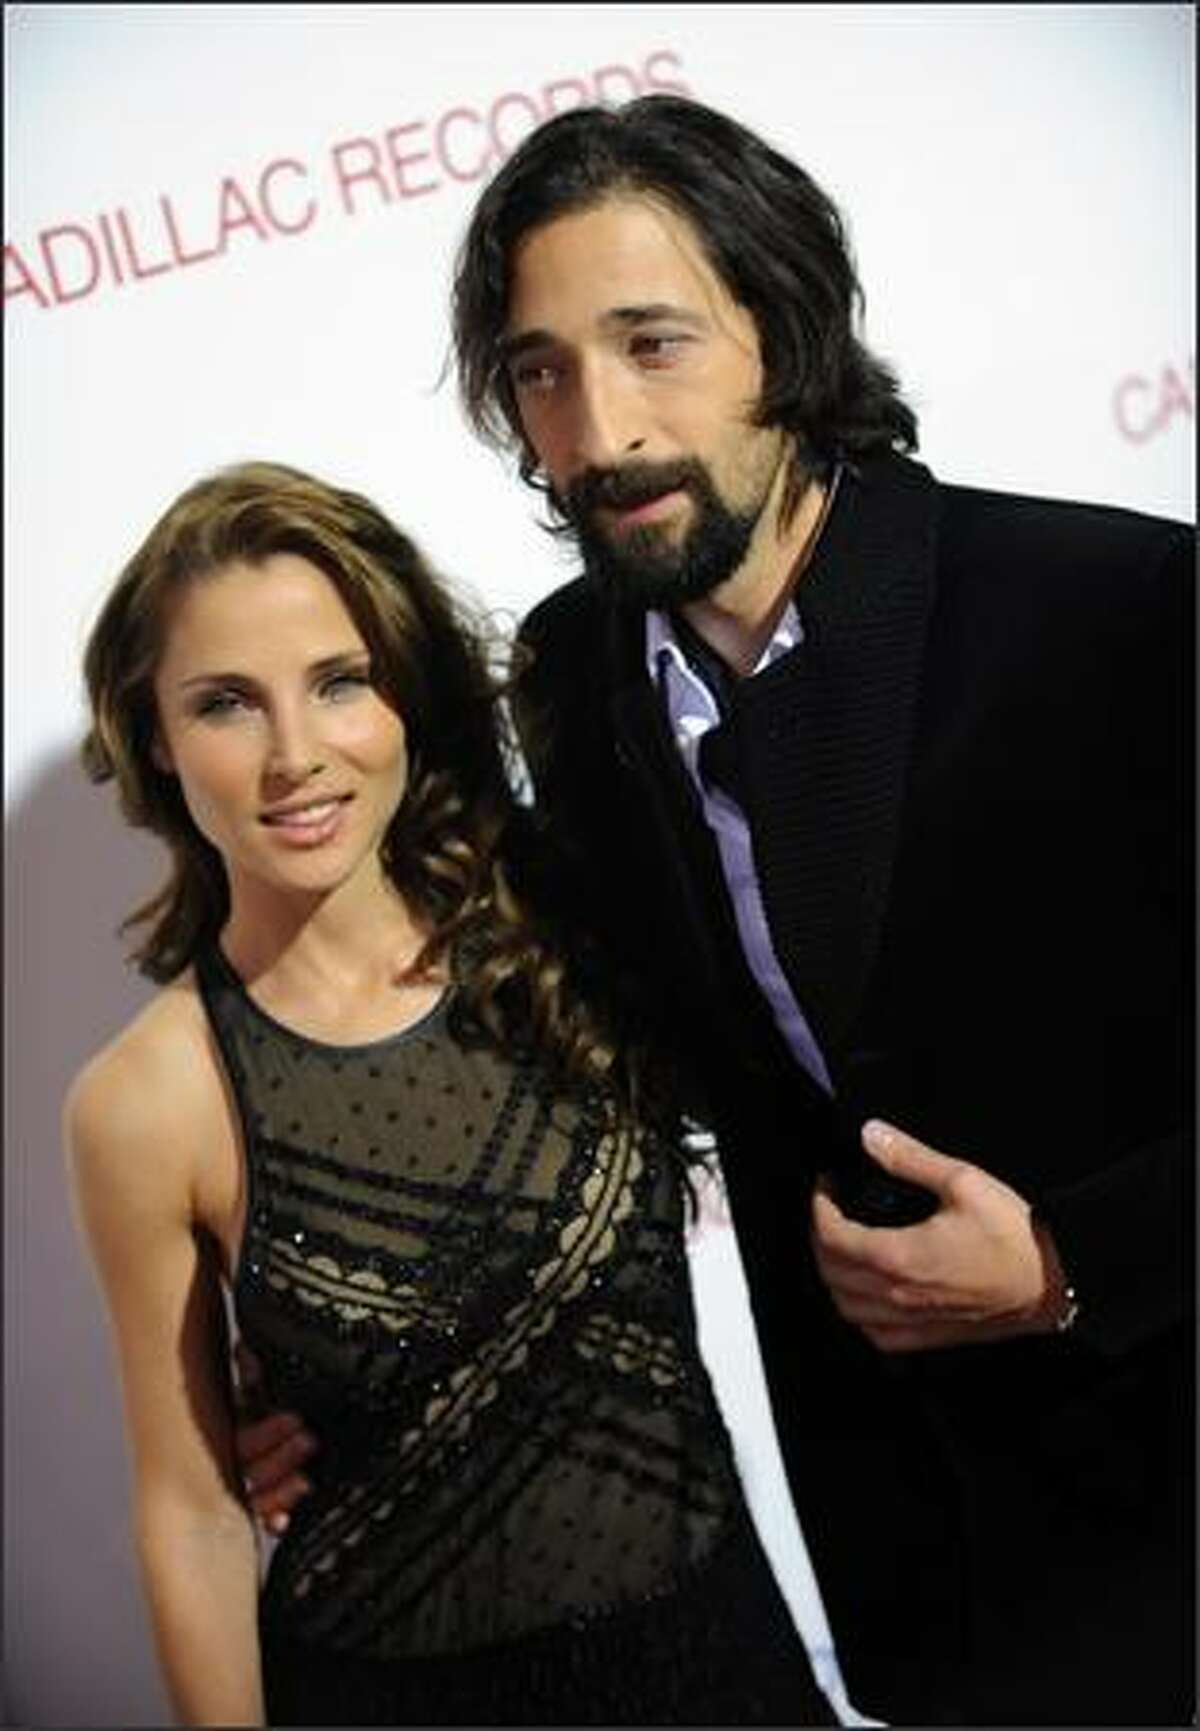 """Actor Adrien Brody arrives with his girlfriend, Spanish actress Elsa Pataky, for the Los Angeles premiere of """"Cadillac Records"""" on Monday in Hollywood, Calif."""